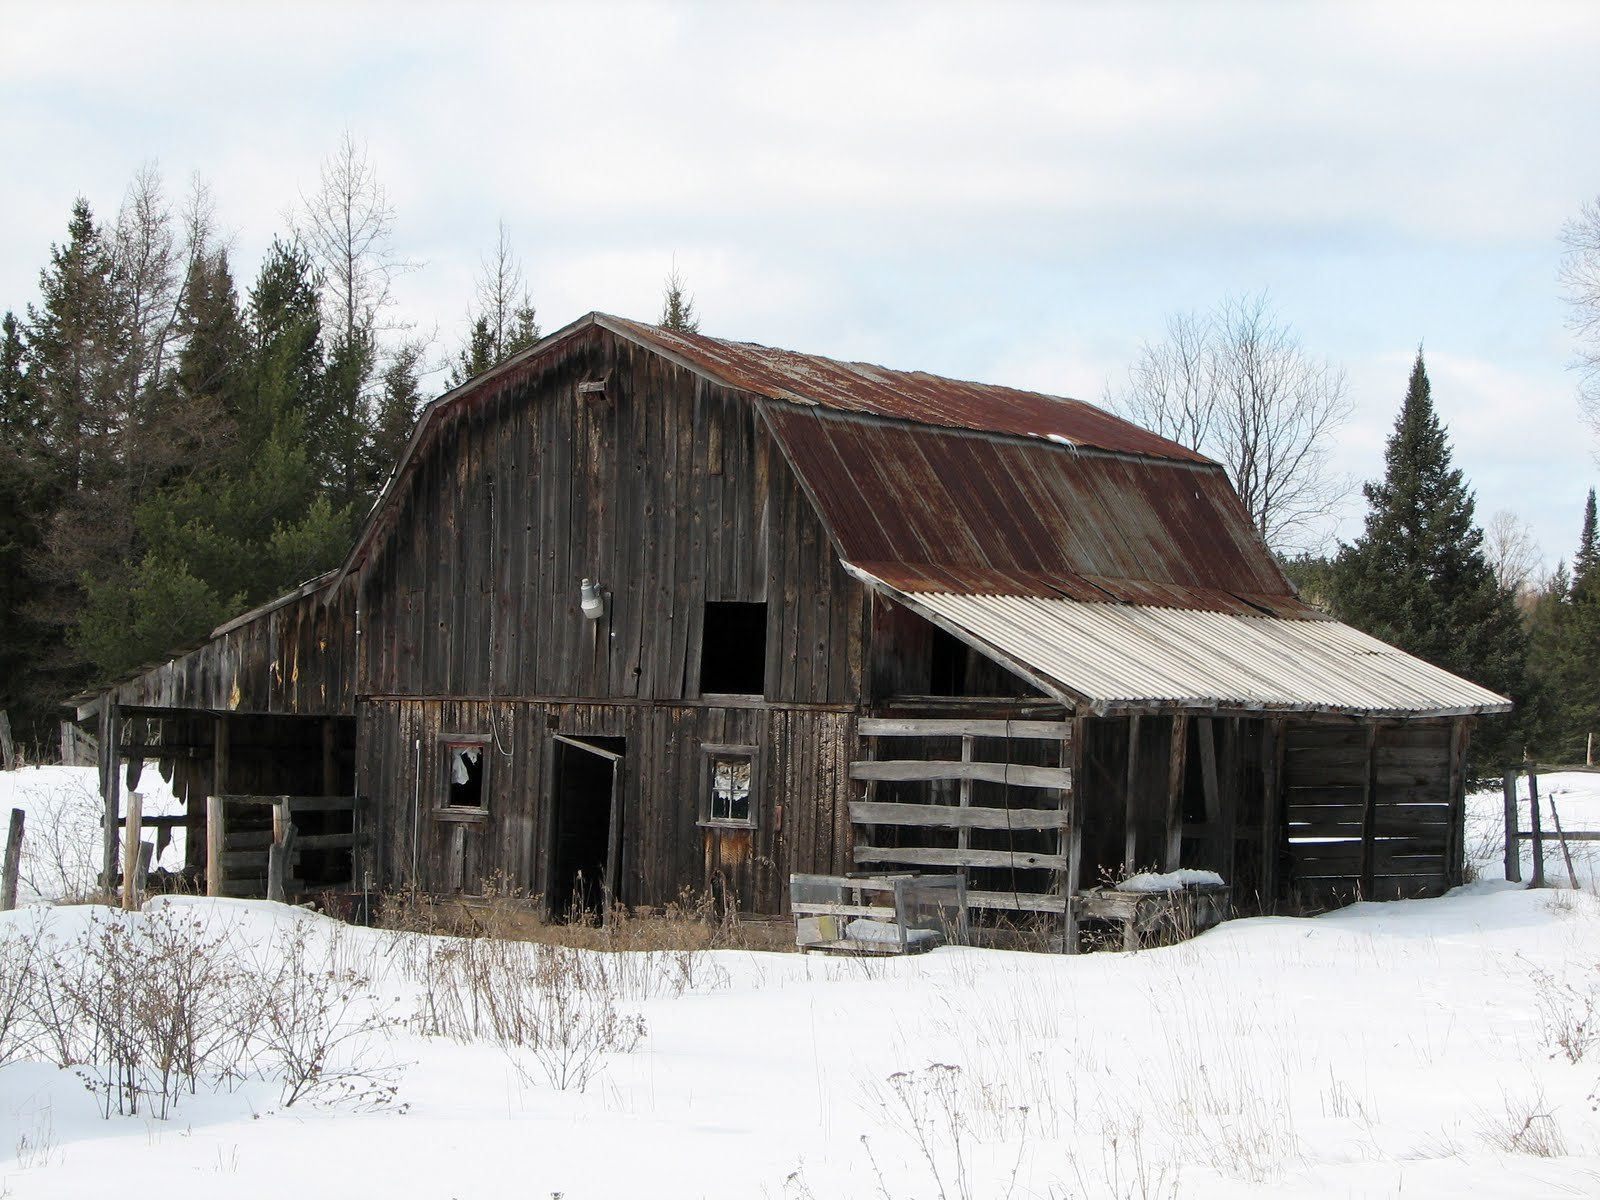 Farms Building Rustic Farm Barn Vintage 57 Wallpaper